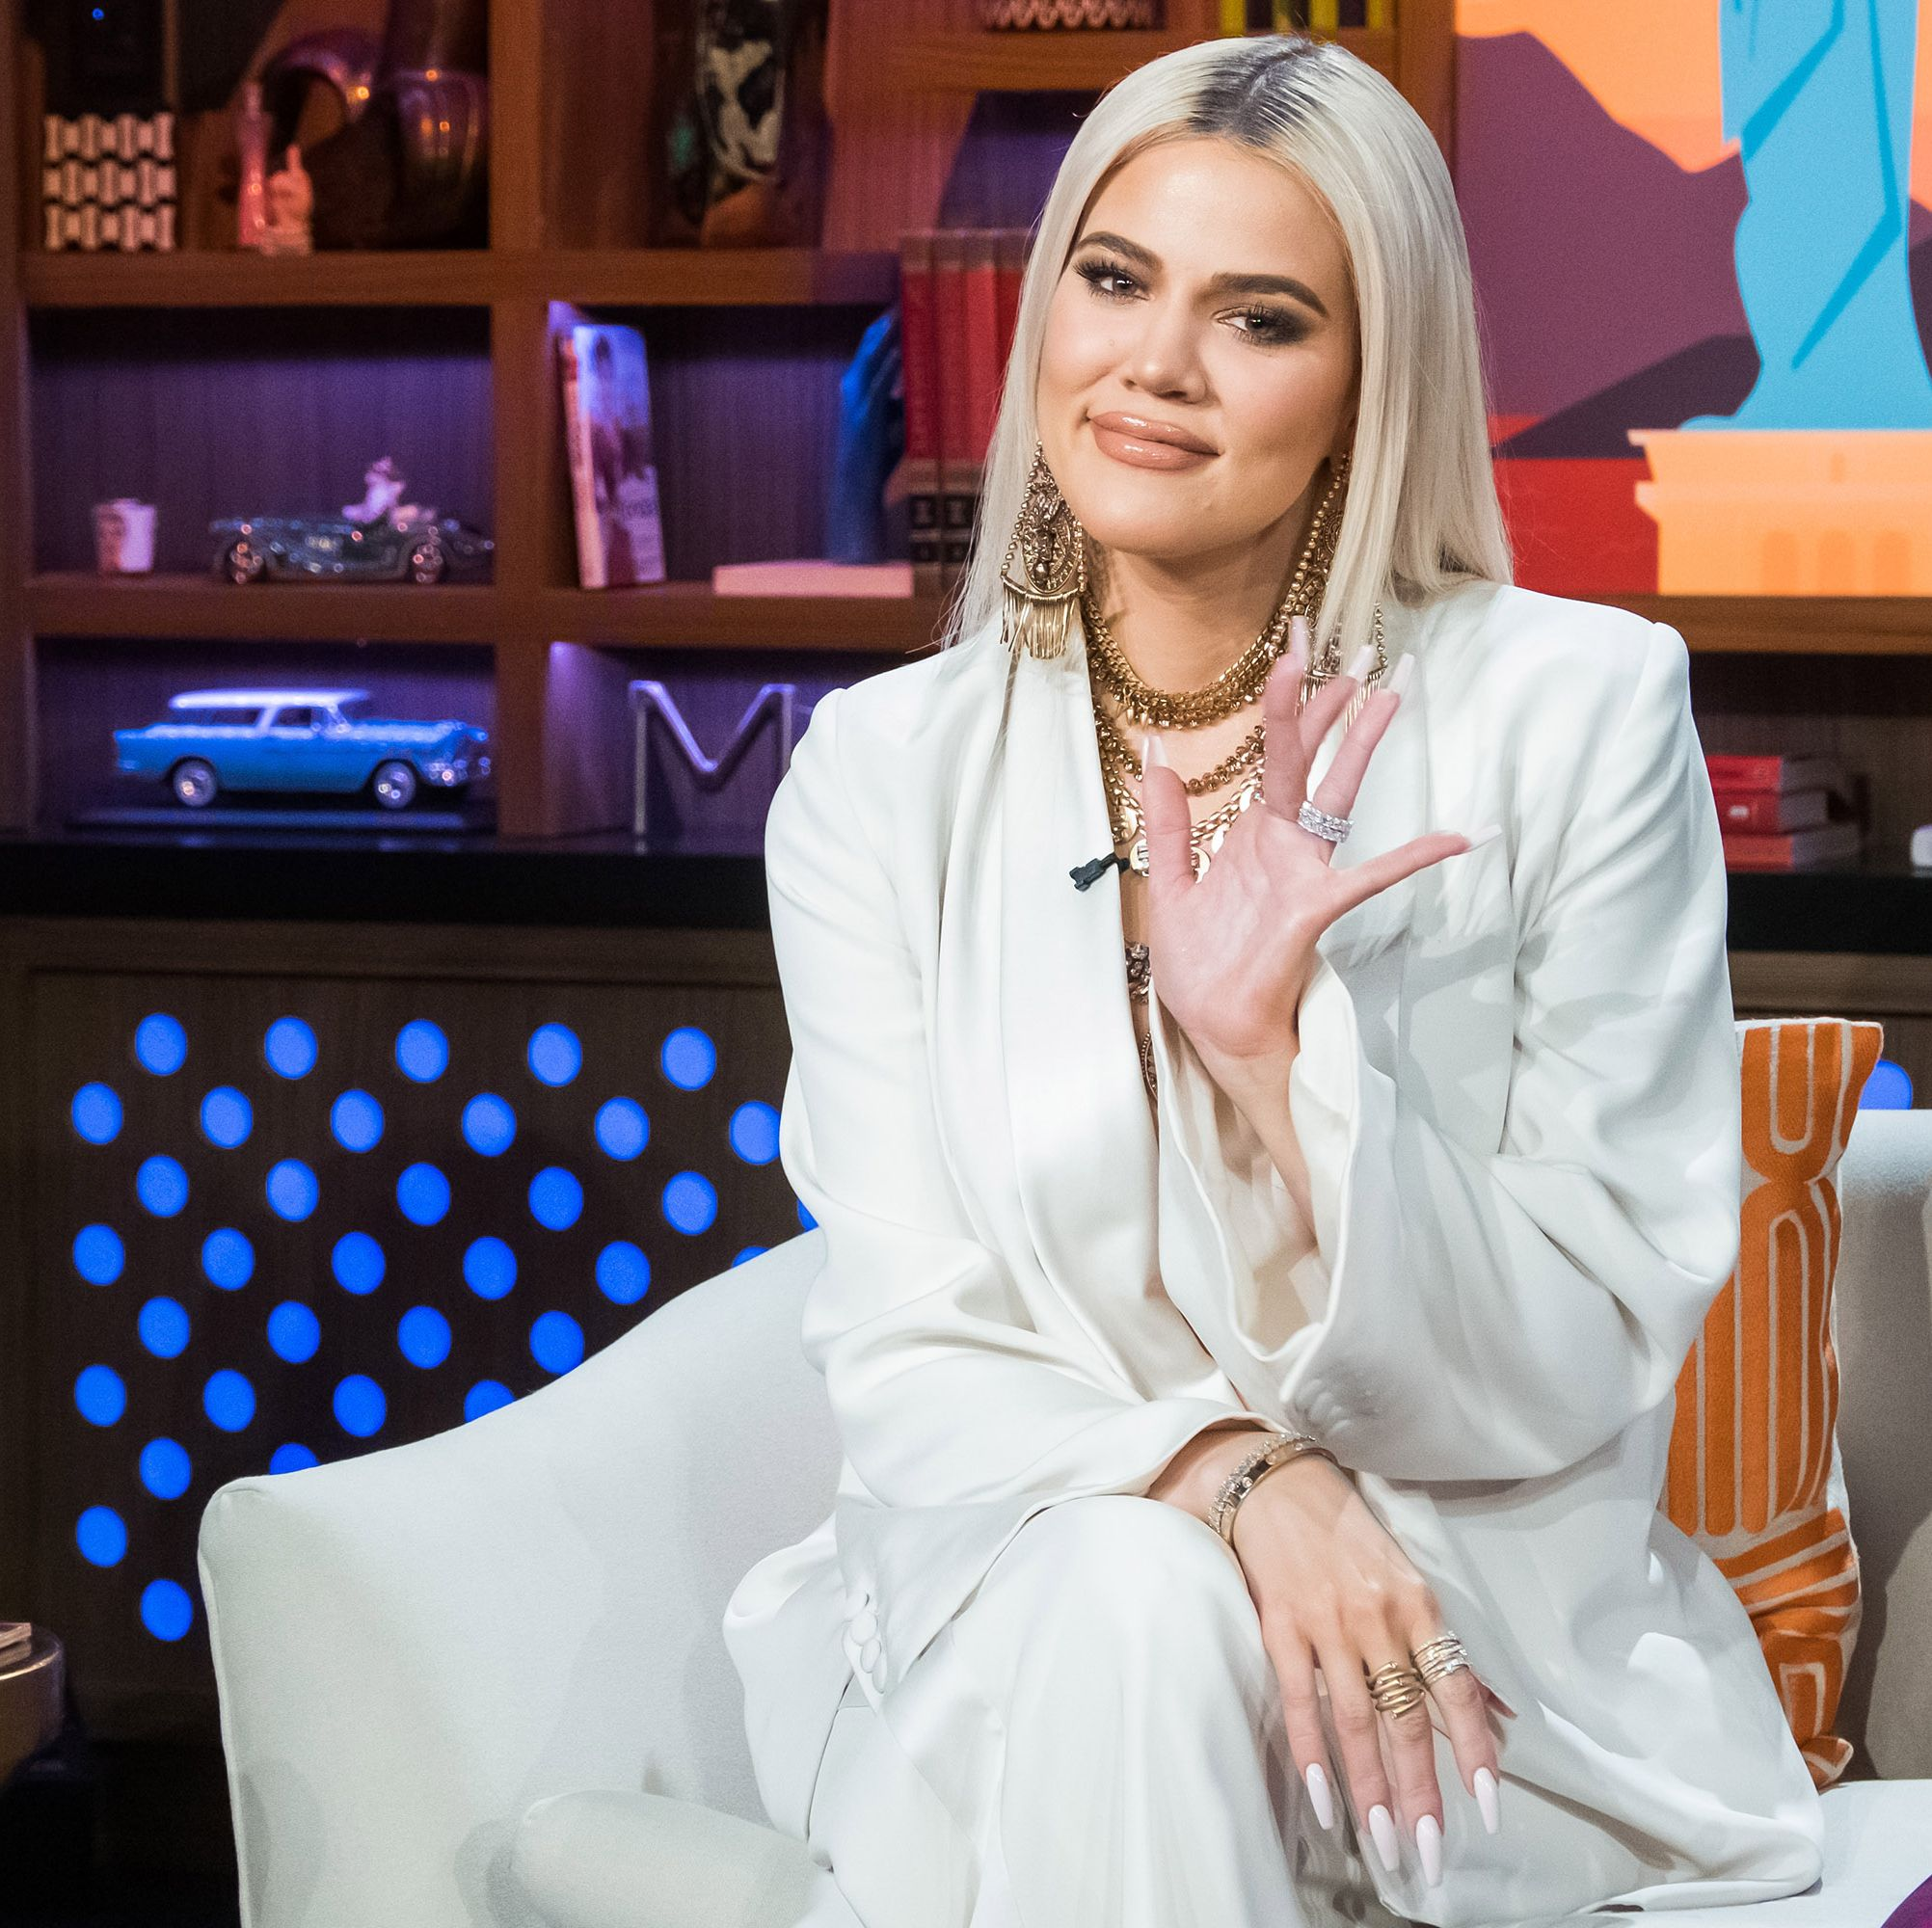 There's A Very Real Chance Khloé Kardashian Will Be The Next 'Bachelorette'